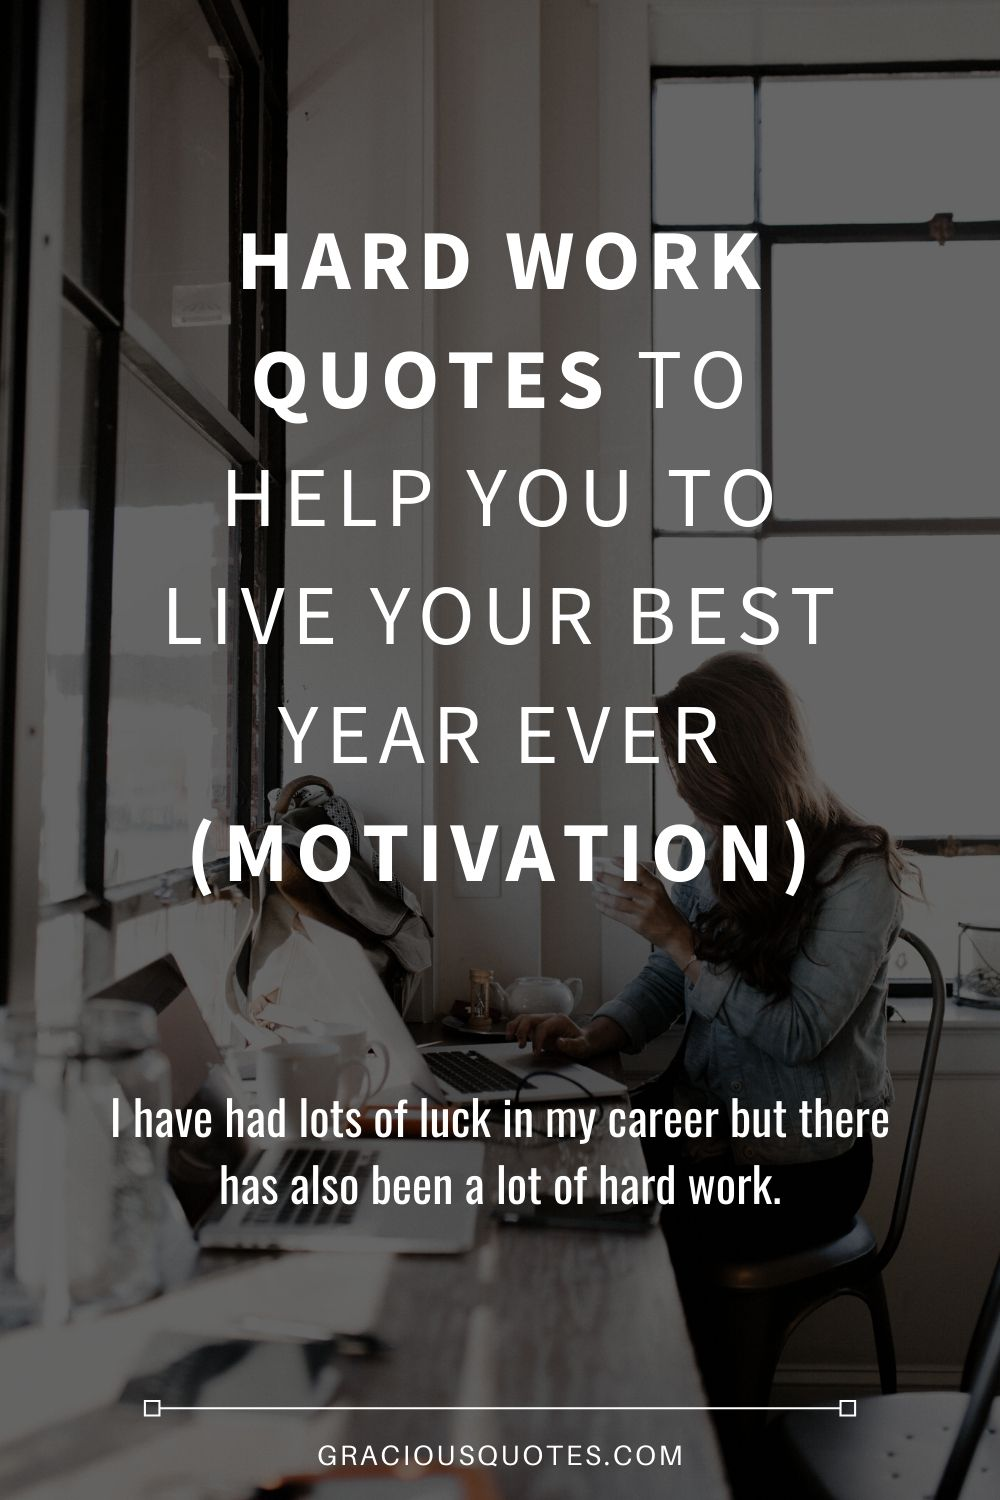 Hard-Work-Quotes-to-Help-You-to-Live-Your-Best-Year-Ever-MOTIVATION-Gracious-Quotes